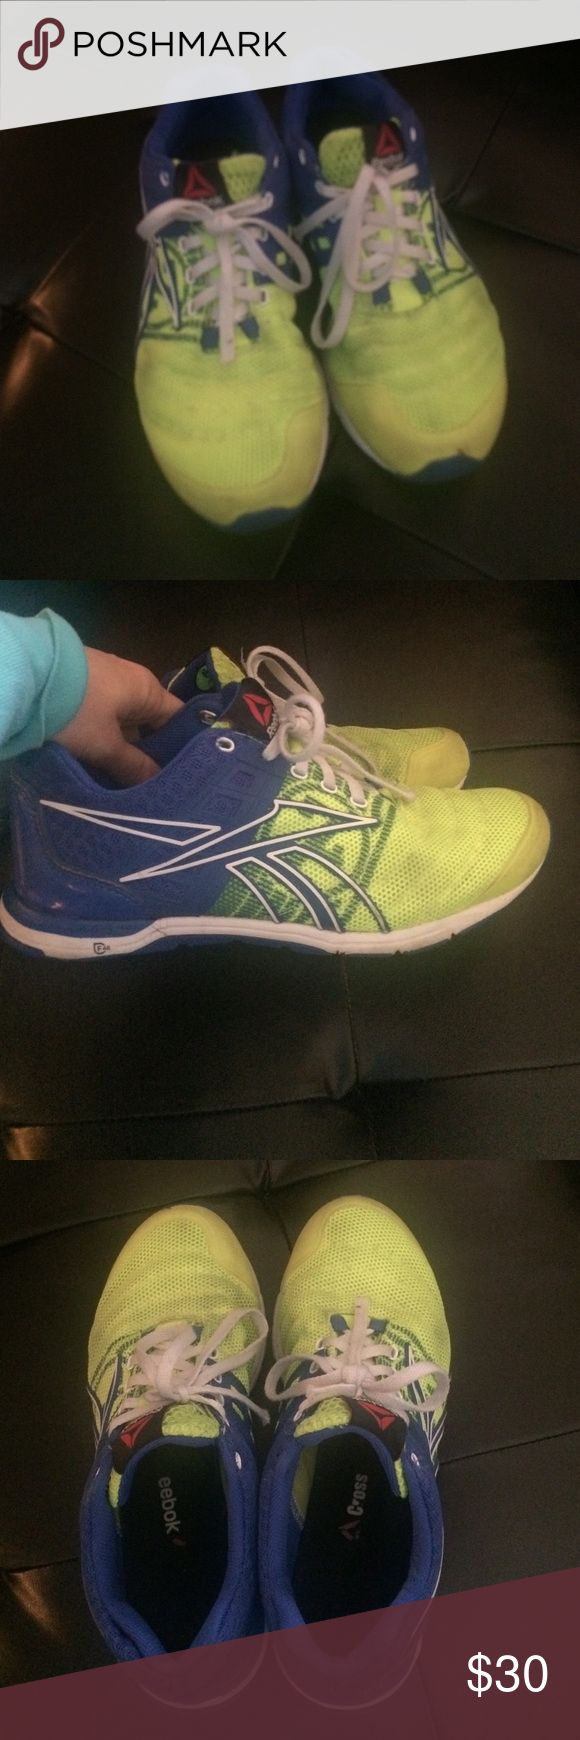 Reebok Crossfit Sprints-make an offer! I think these may be the sprints, not 100%?? Worn and used but still in decent condition. Could probably be thrown in the wash and would be fine. Neon yellow and blue. Laces were cut bc they were too long and they look worn. Too big for me!! Women's size 6. Make an offer Reebok Shoes